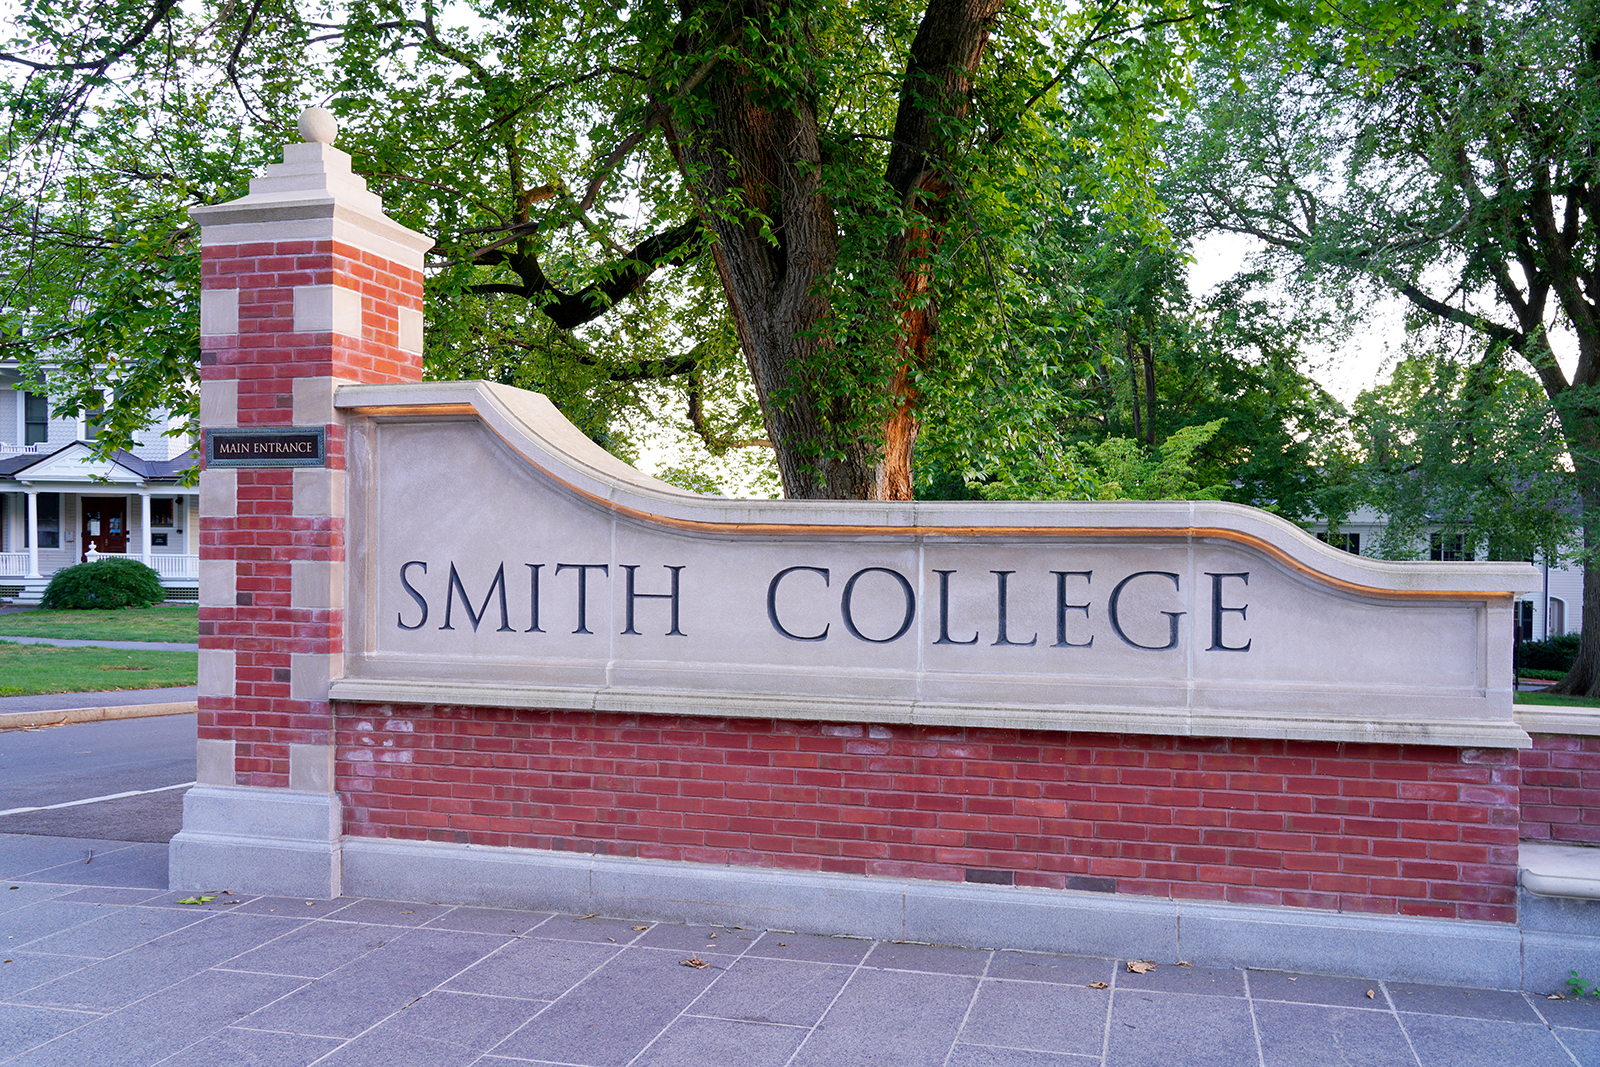 Smith College controversy highlights struggles schools face in making racially equitable campuses